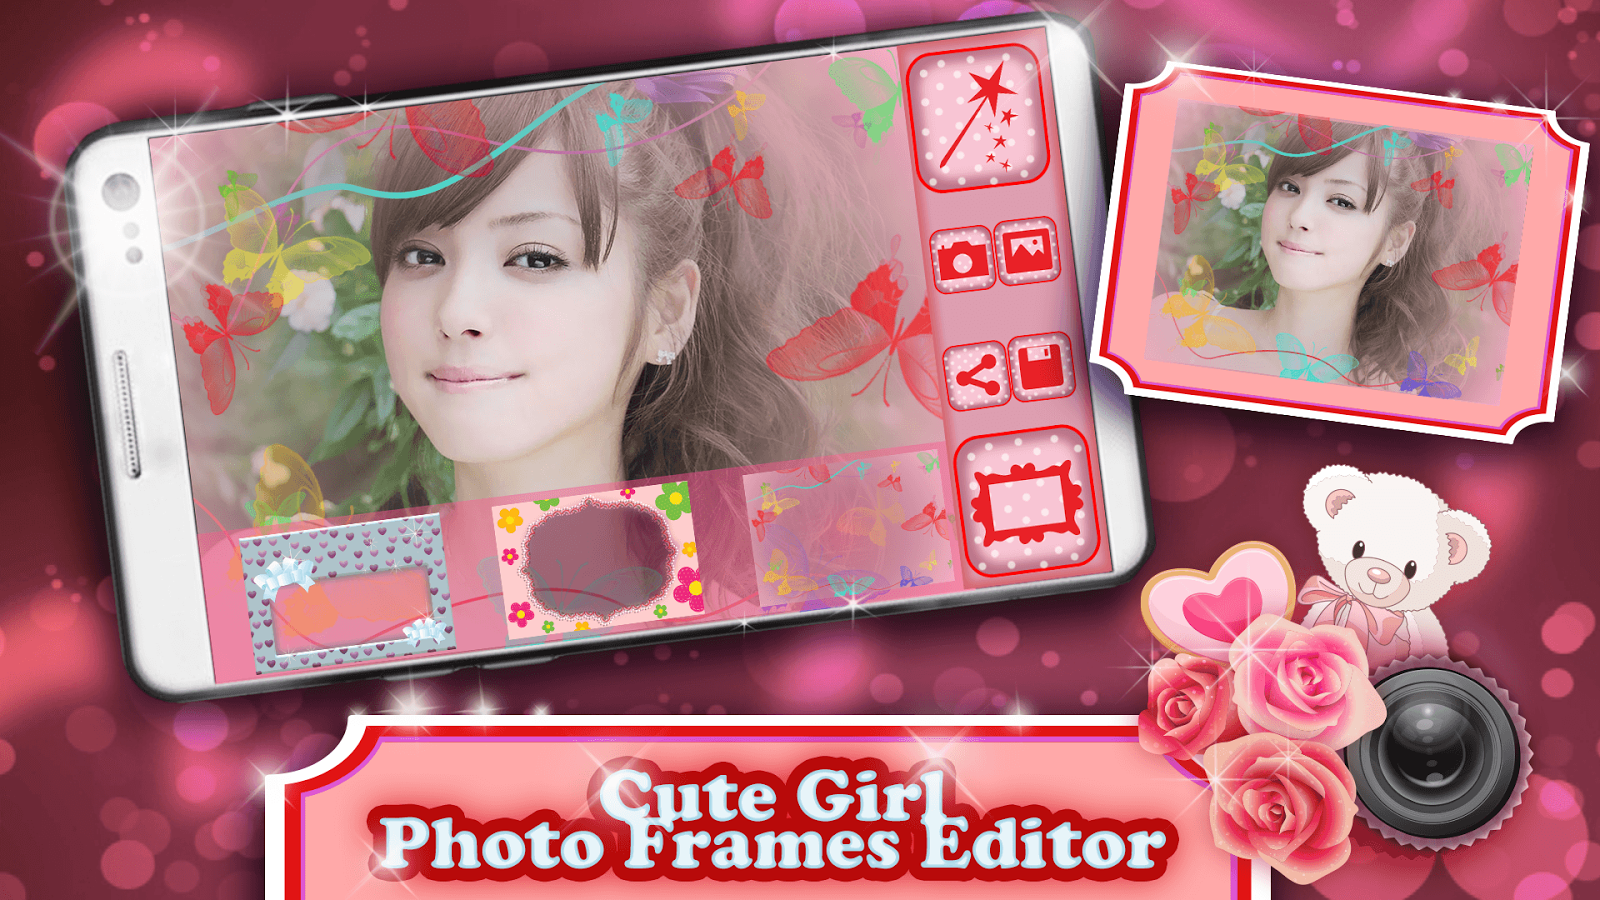 My little girl photo frame All effects - PhotoFunia: Free pic editor online with